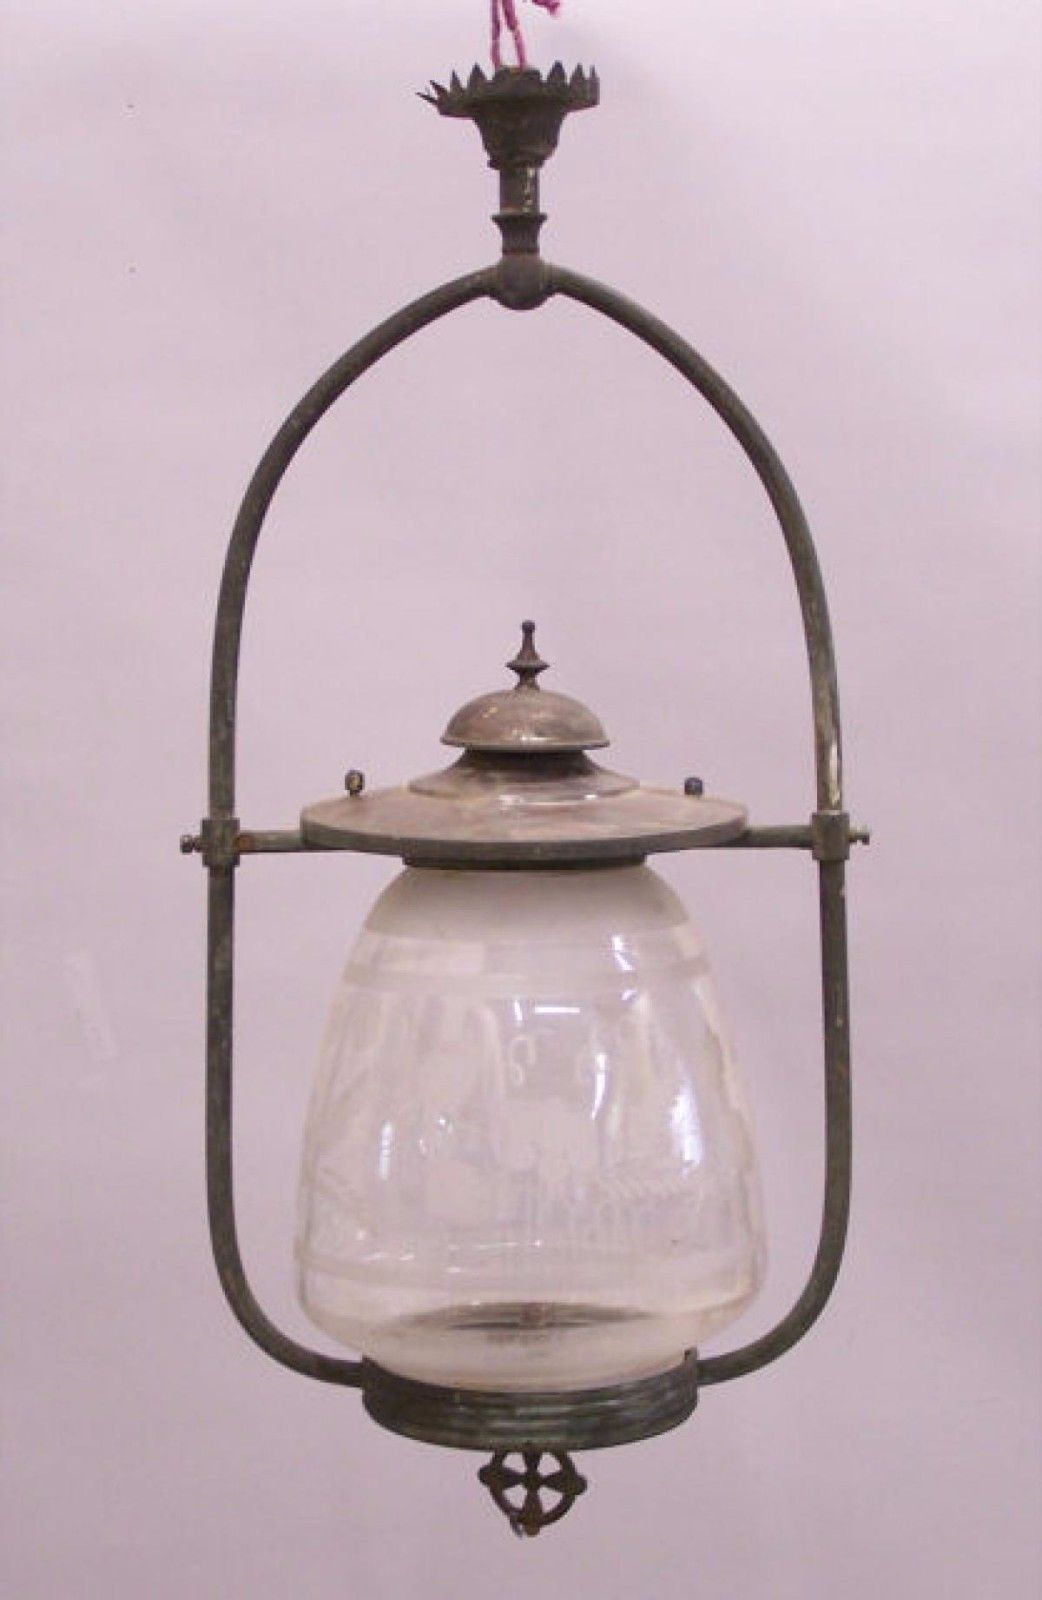 Antique Victorian Hanging Etched Glass Gas Light Fixture C1880 Antique Light Fixtures Gas Lights Victorian Lighting